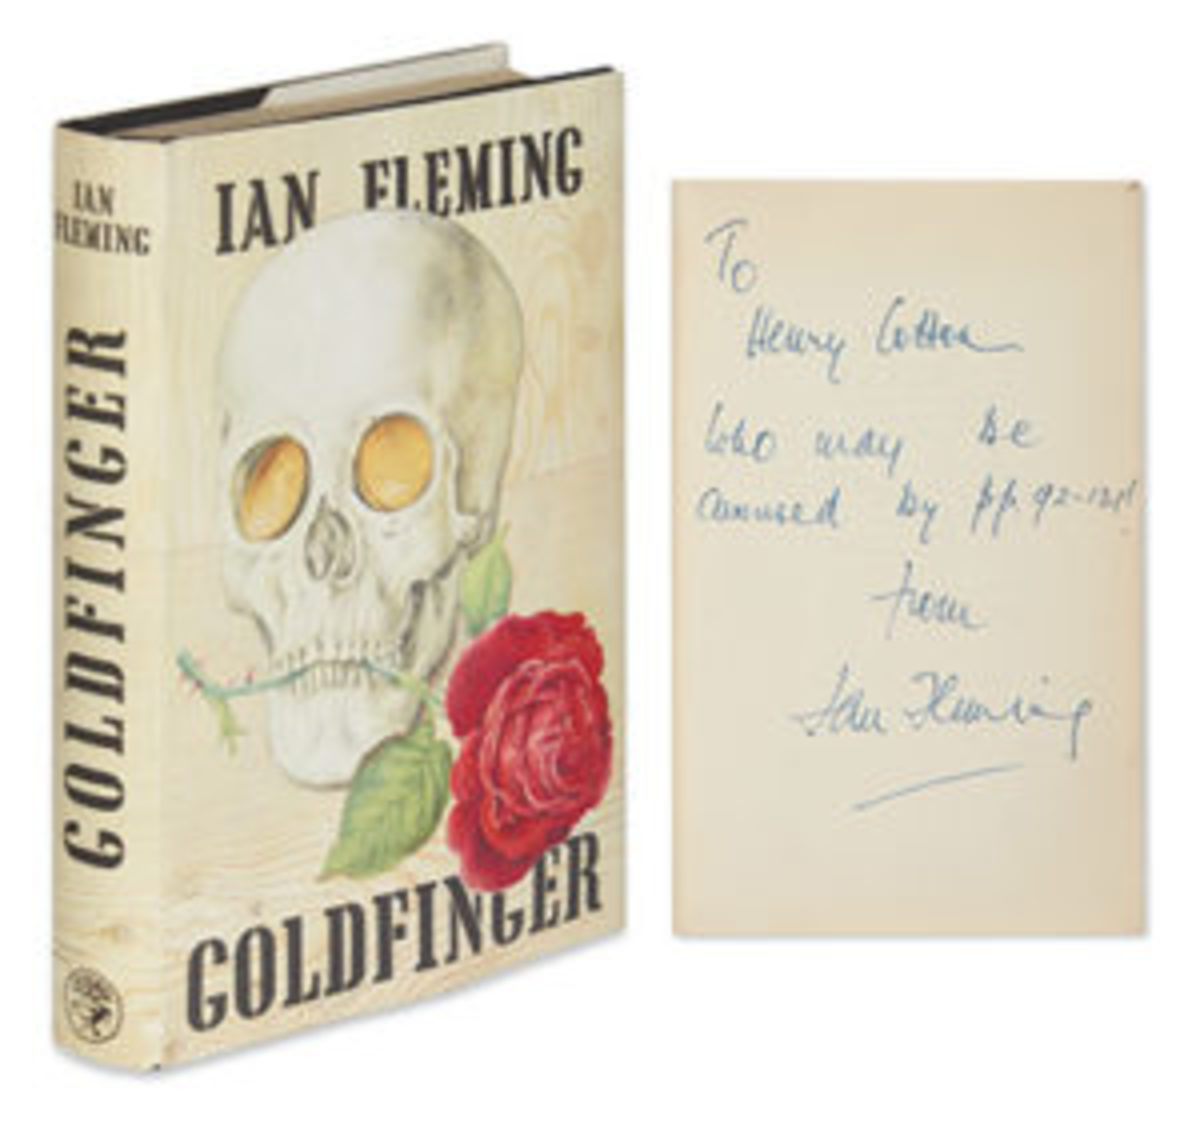 Ian Fleming, Goldfinger, 1959, first edition, inscribed to Sir Henry Cotton, MBE, London, $25,000. Courtesy of Swann Auction Galleries